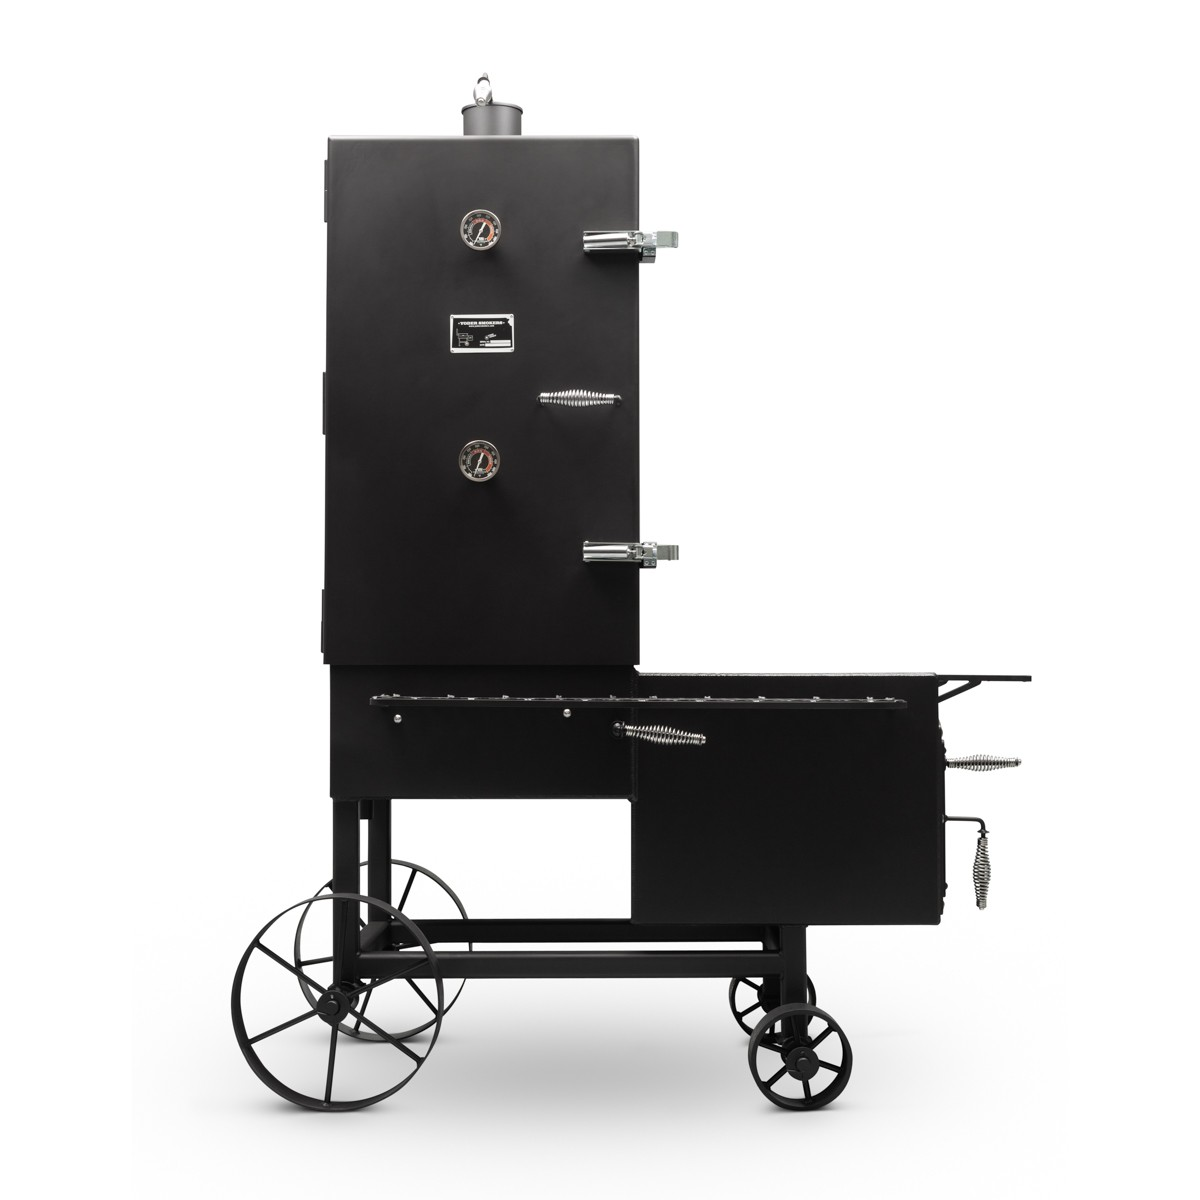 "Yoder Smokers 24"" Stockton Vertical Smoker"